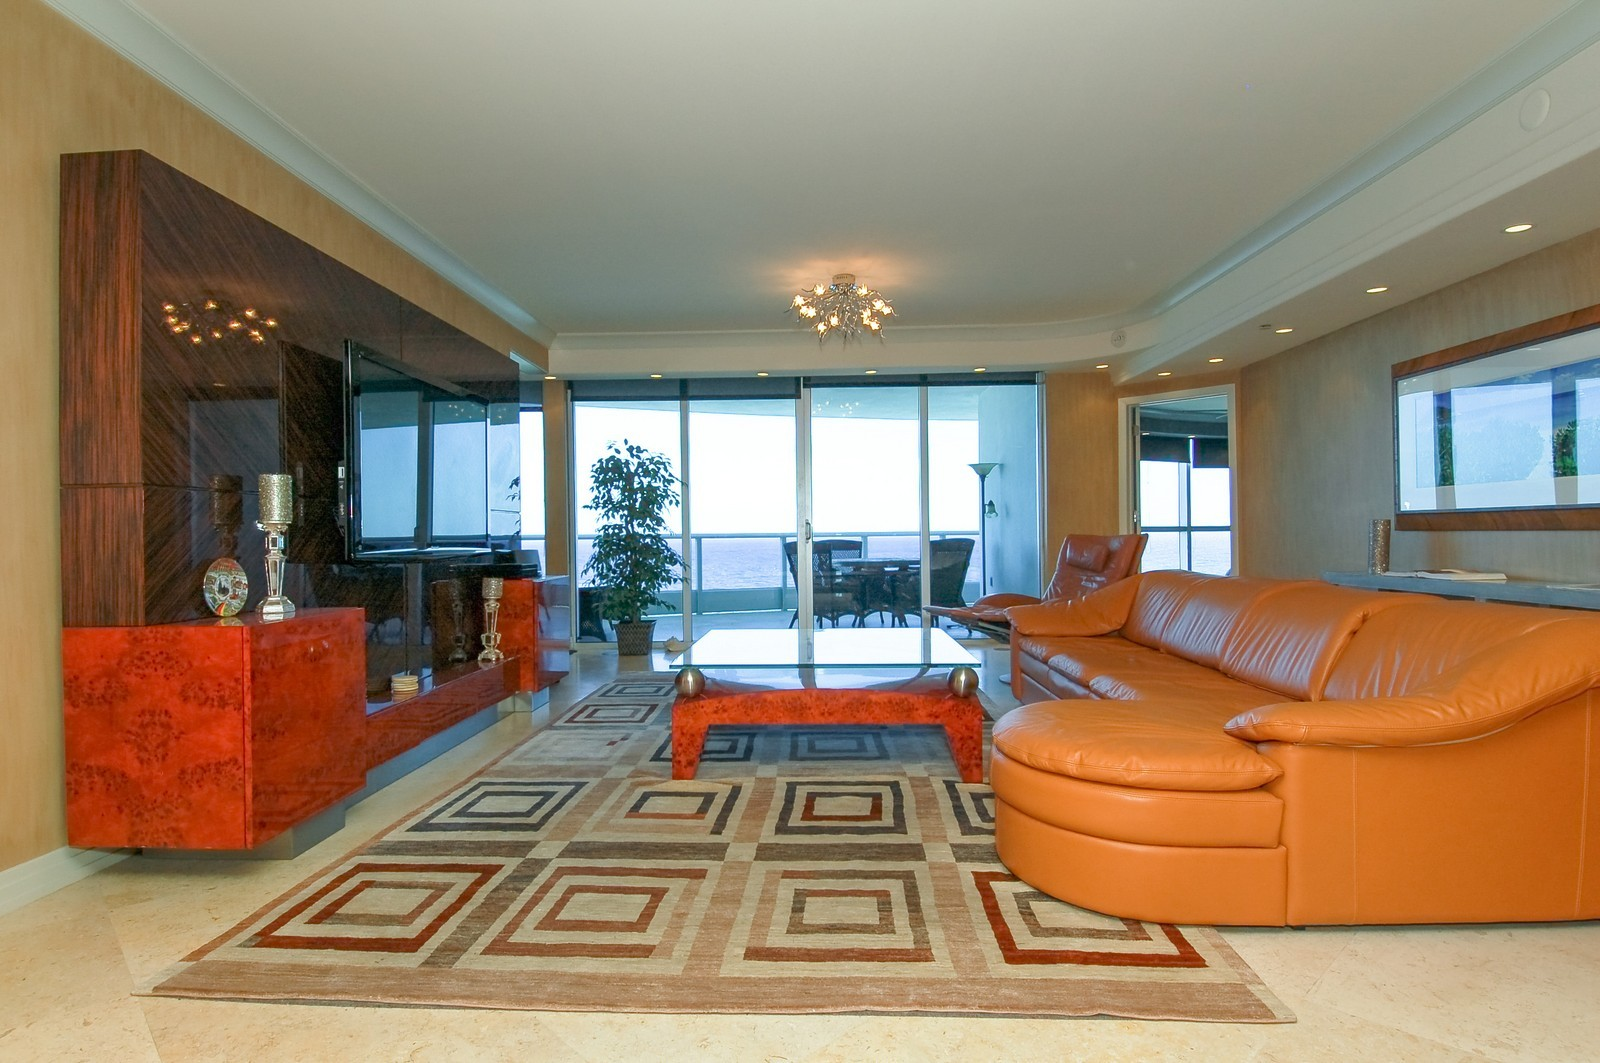 Real Estate Photography - 1600 S Ocean Blvd, Apt 802, Pompano Beach, FL, 33062 - Living Room